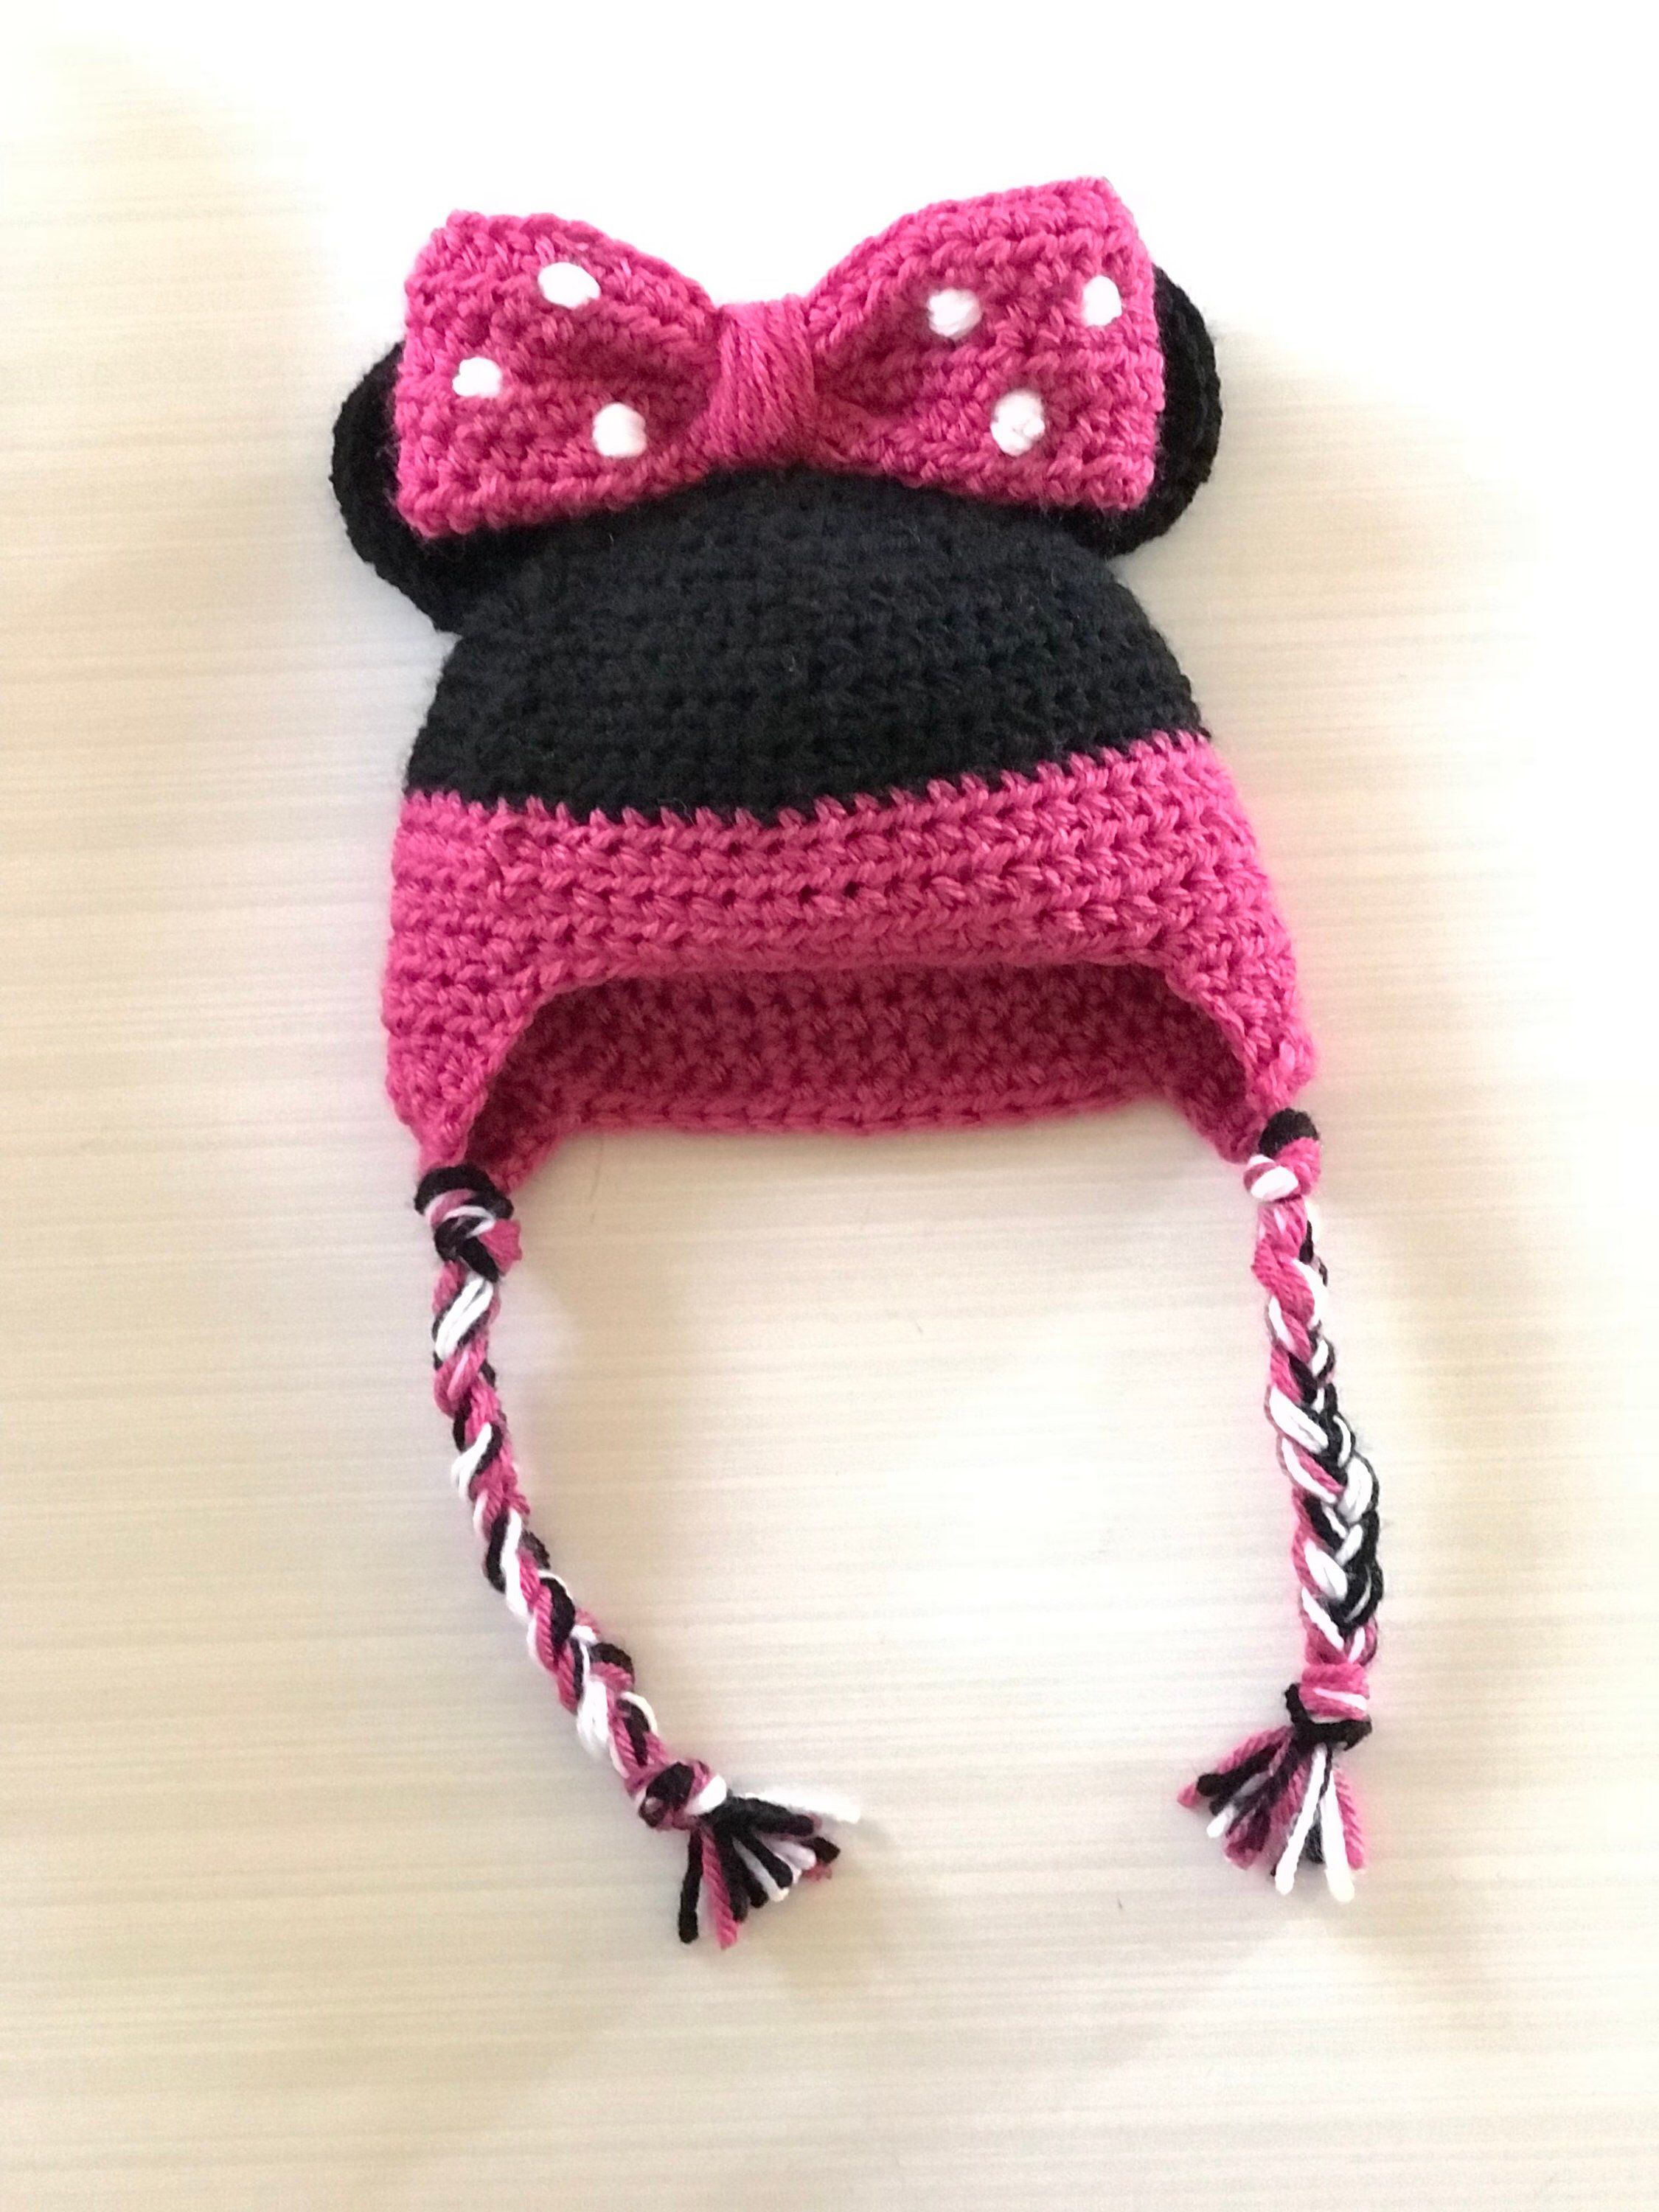 3431b363866 Excited to share this item from my  etsy shop  Baby Minnie Mouse Crochet Hat   accessories  hat  babyshower  christmas  mickeymouseclubhouse   redmickeymouse ...